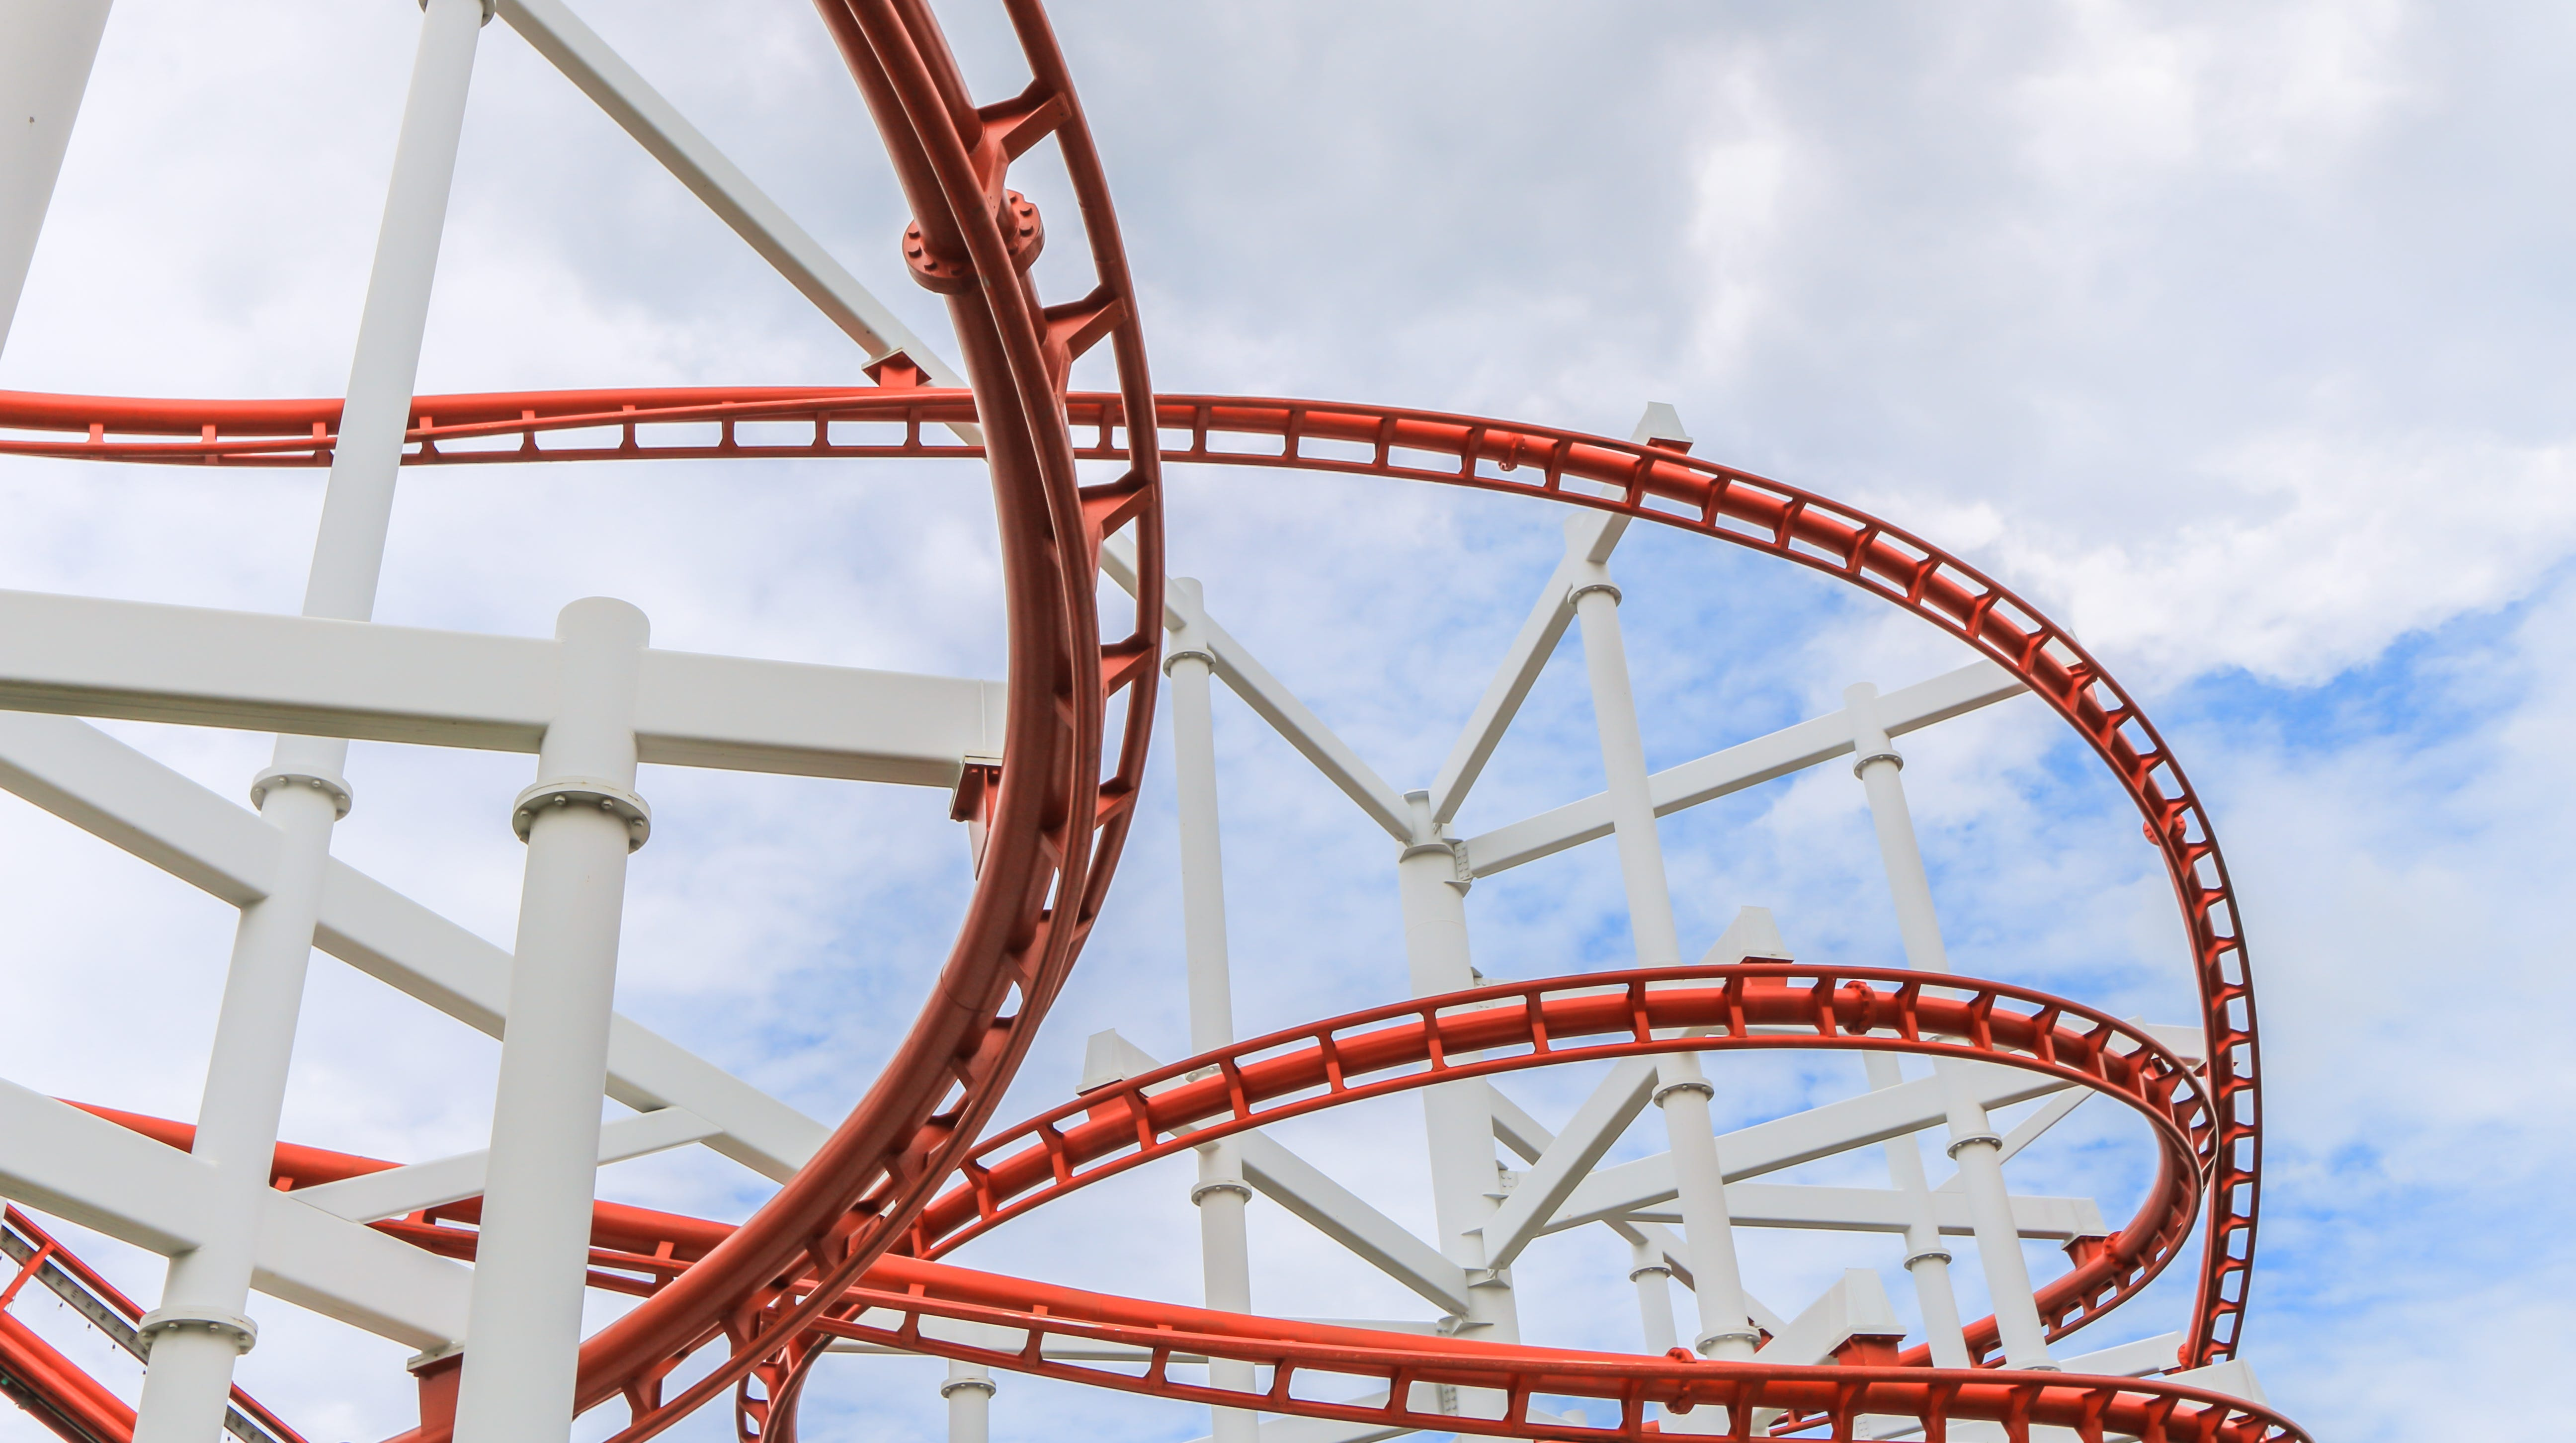 Red roller Coaster Track in amusement park.